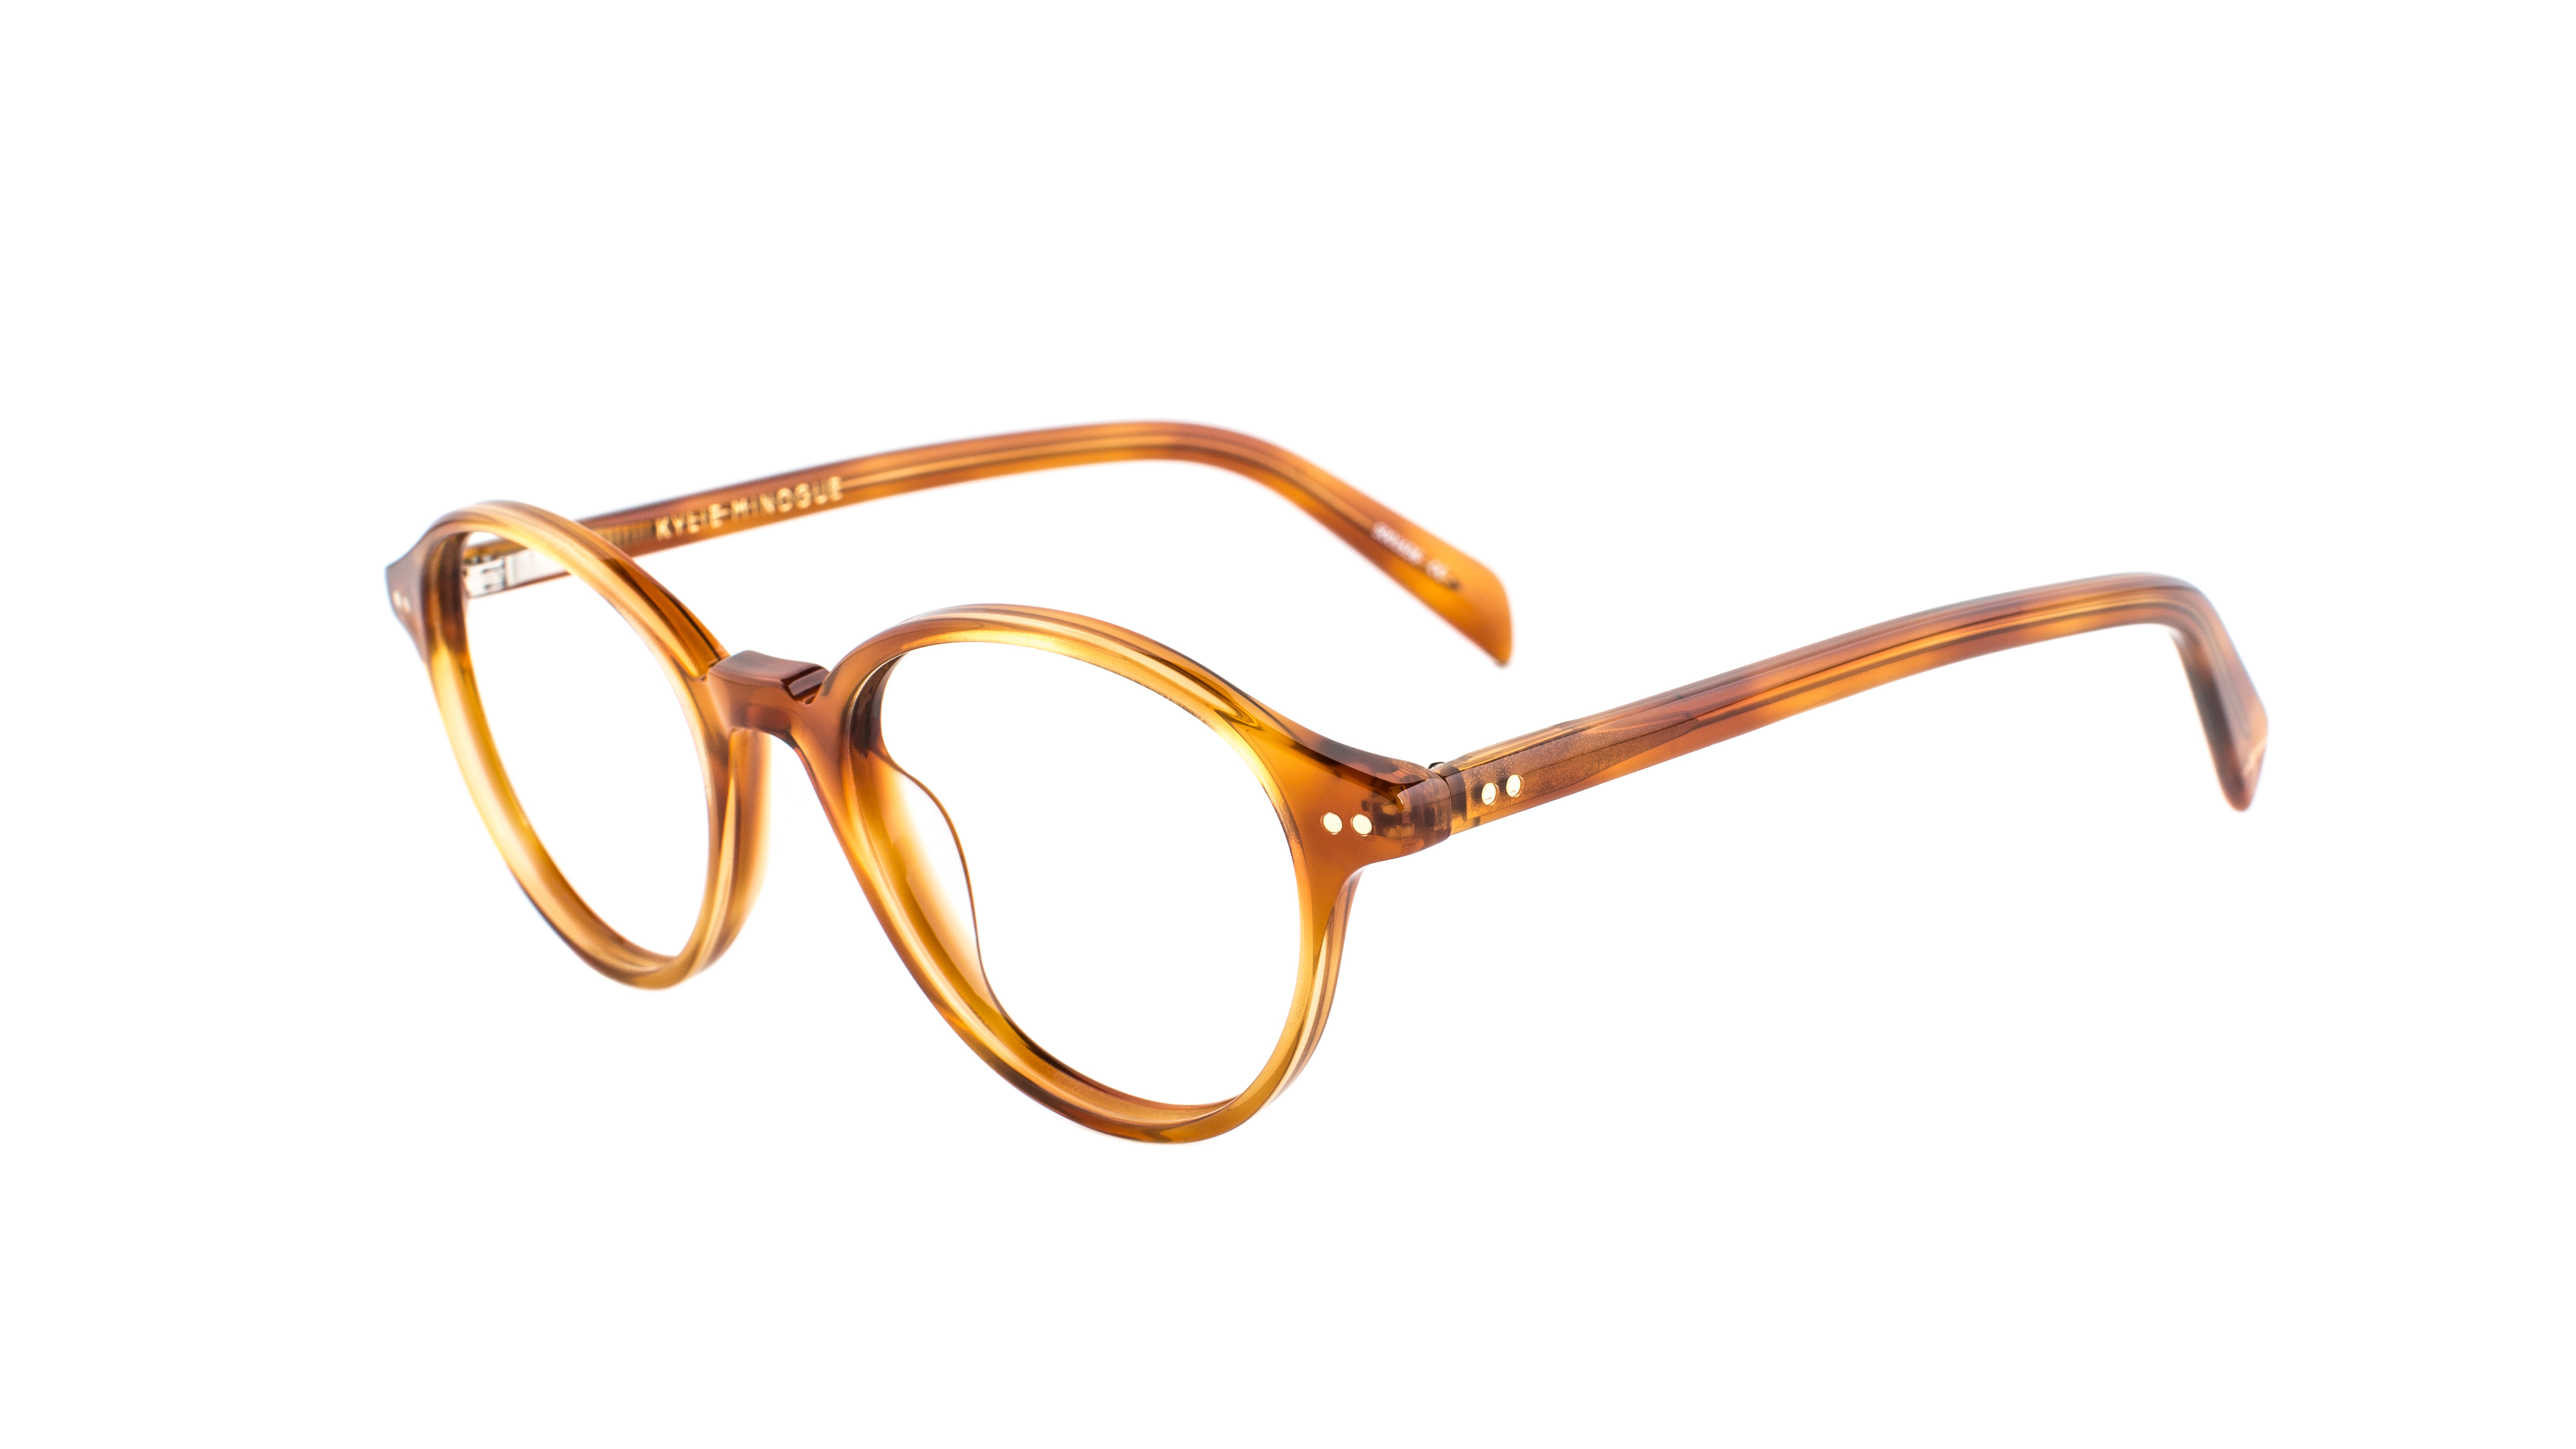 Kylie Minogue Eyewear_Kylie 06_SKU 30520196_RRP 2 pairs from $299 (2)